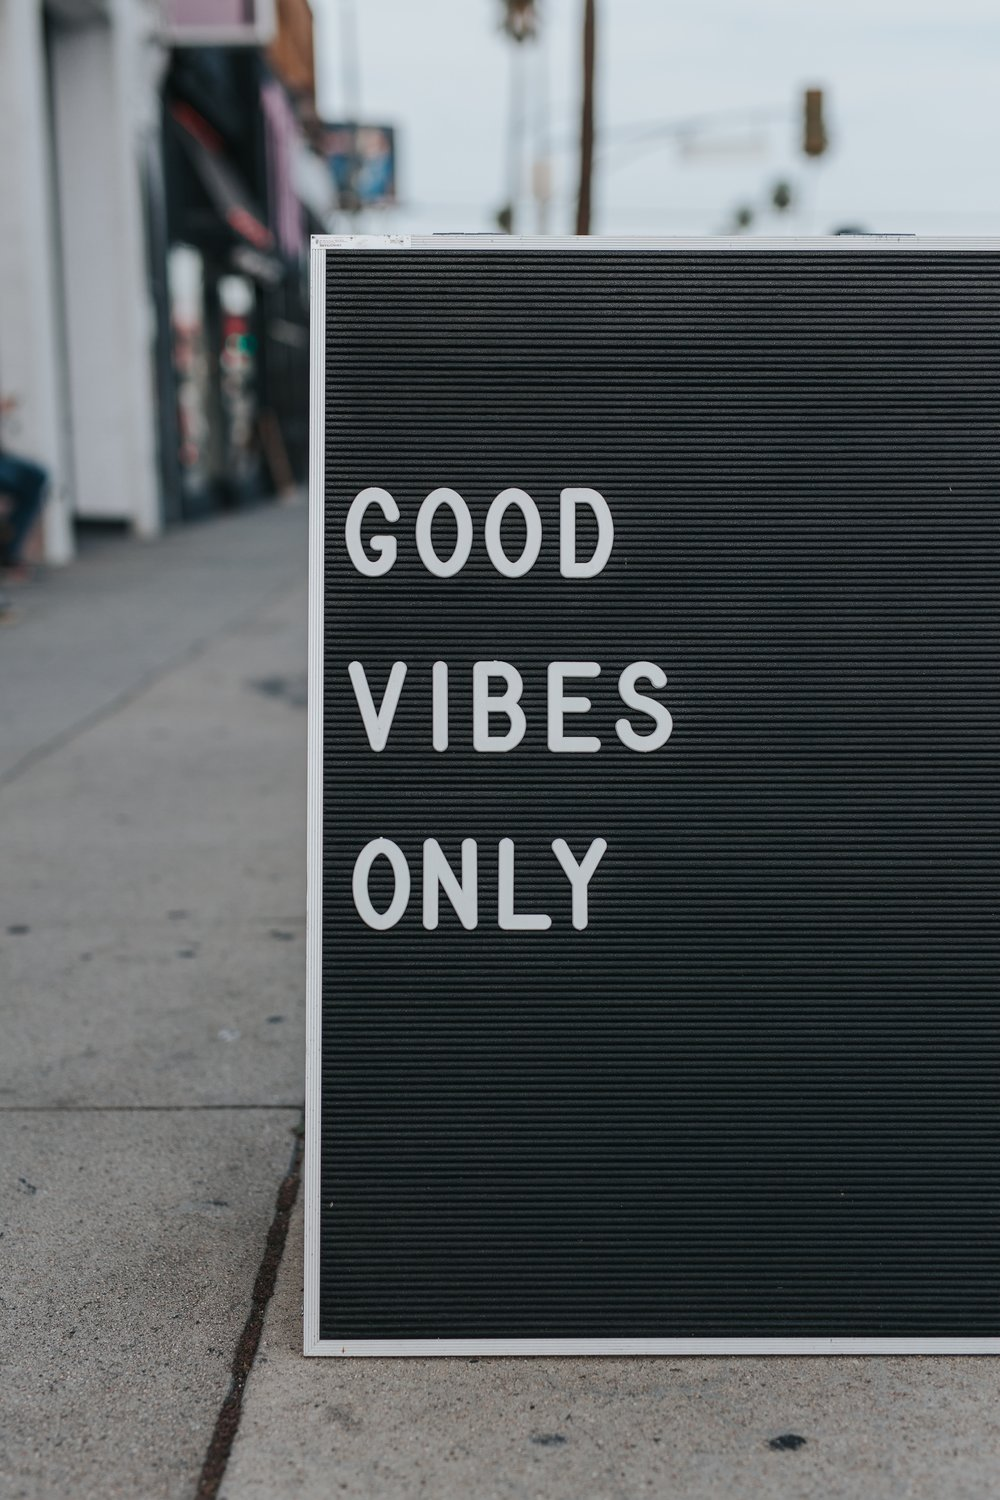 we want good vibes only not taking any negative vibes